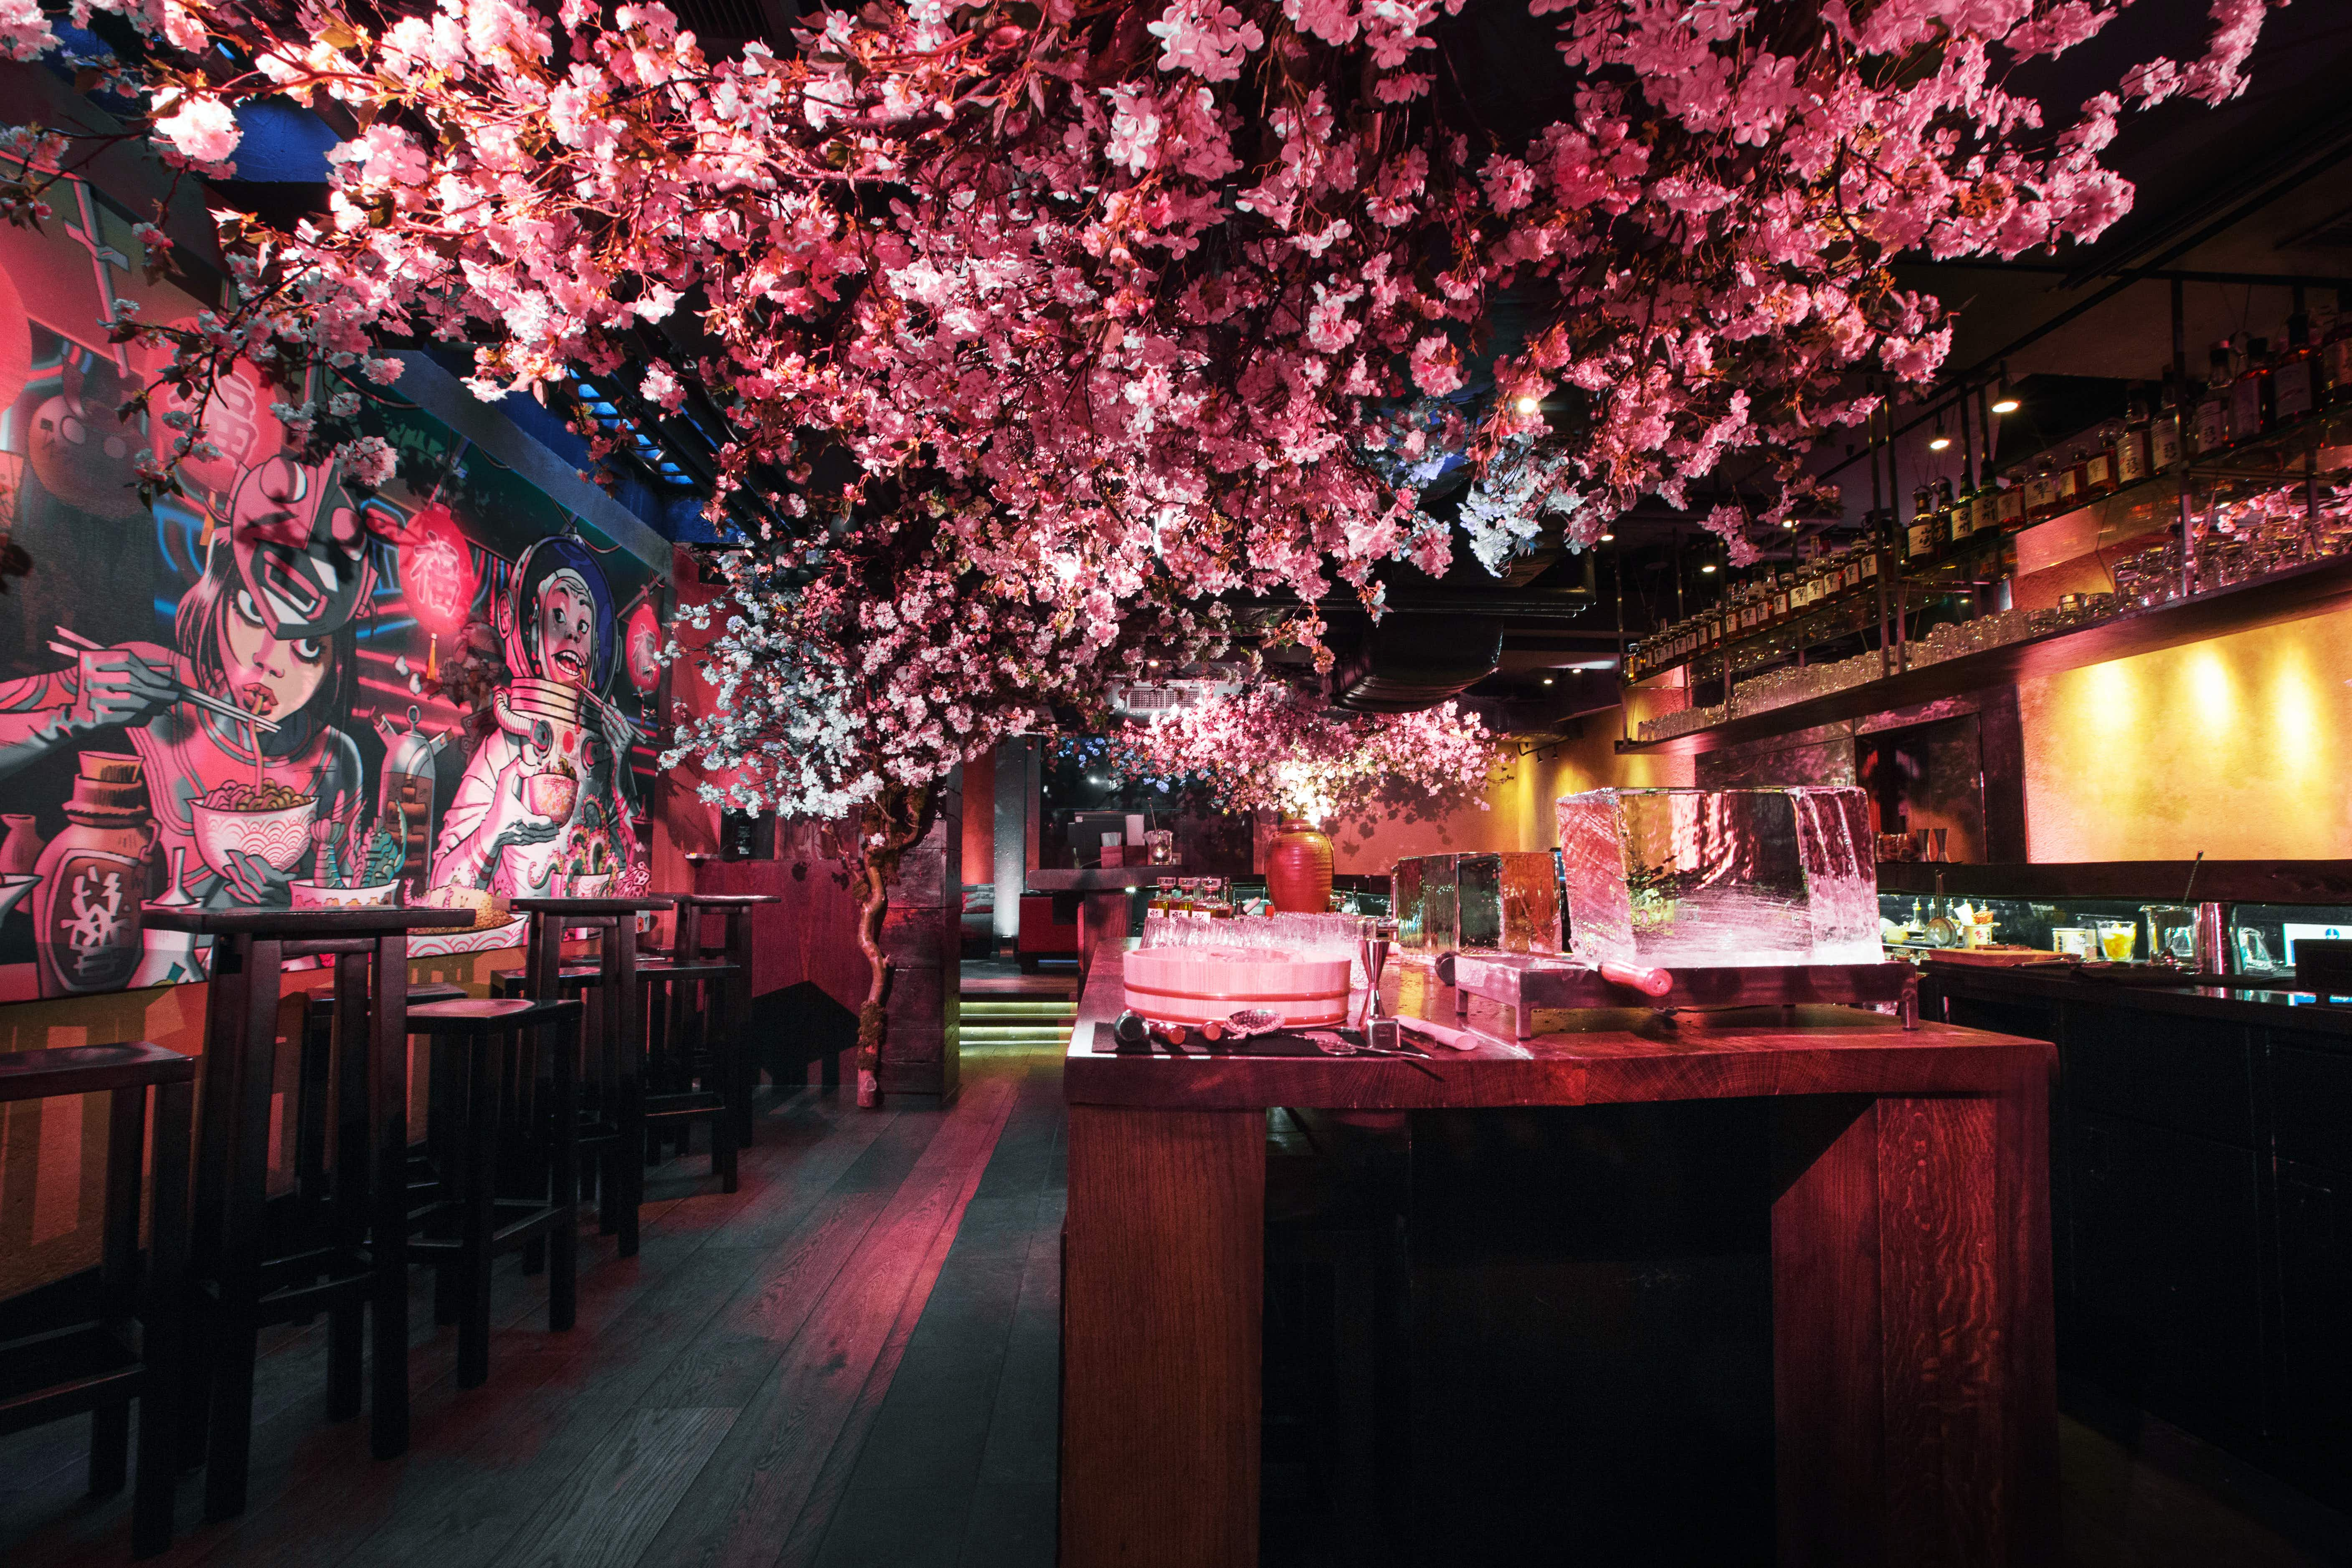 You can sip sakura cocktails under a canopy of cherry blossoms at this London restaurant